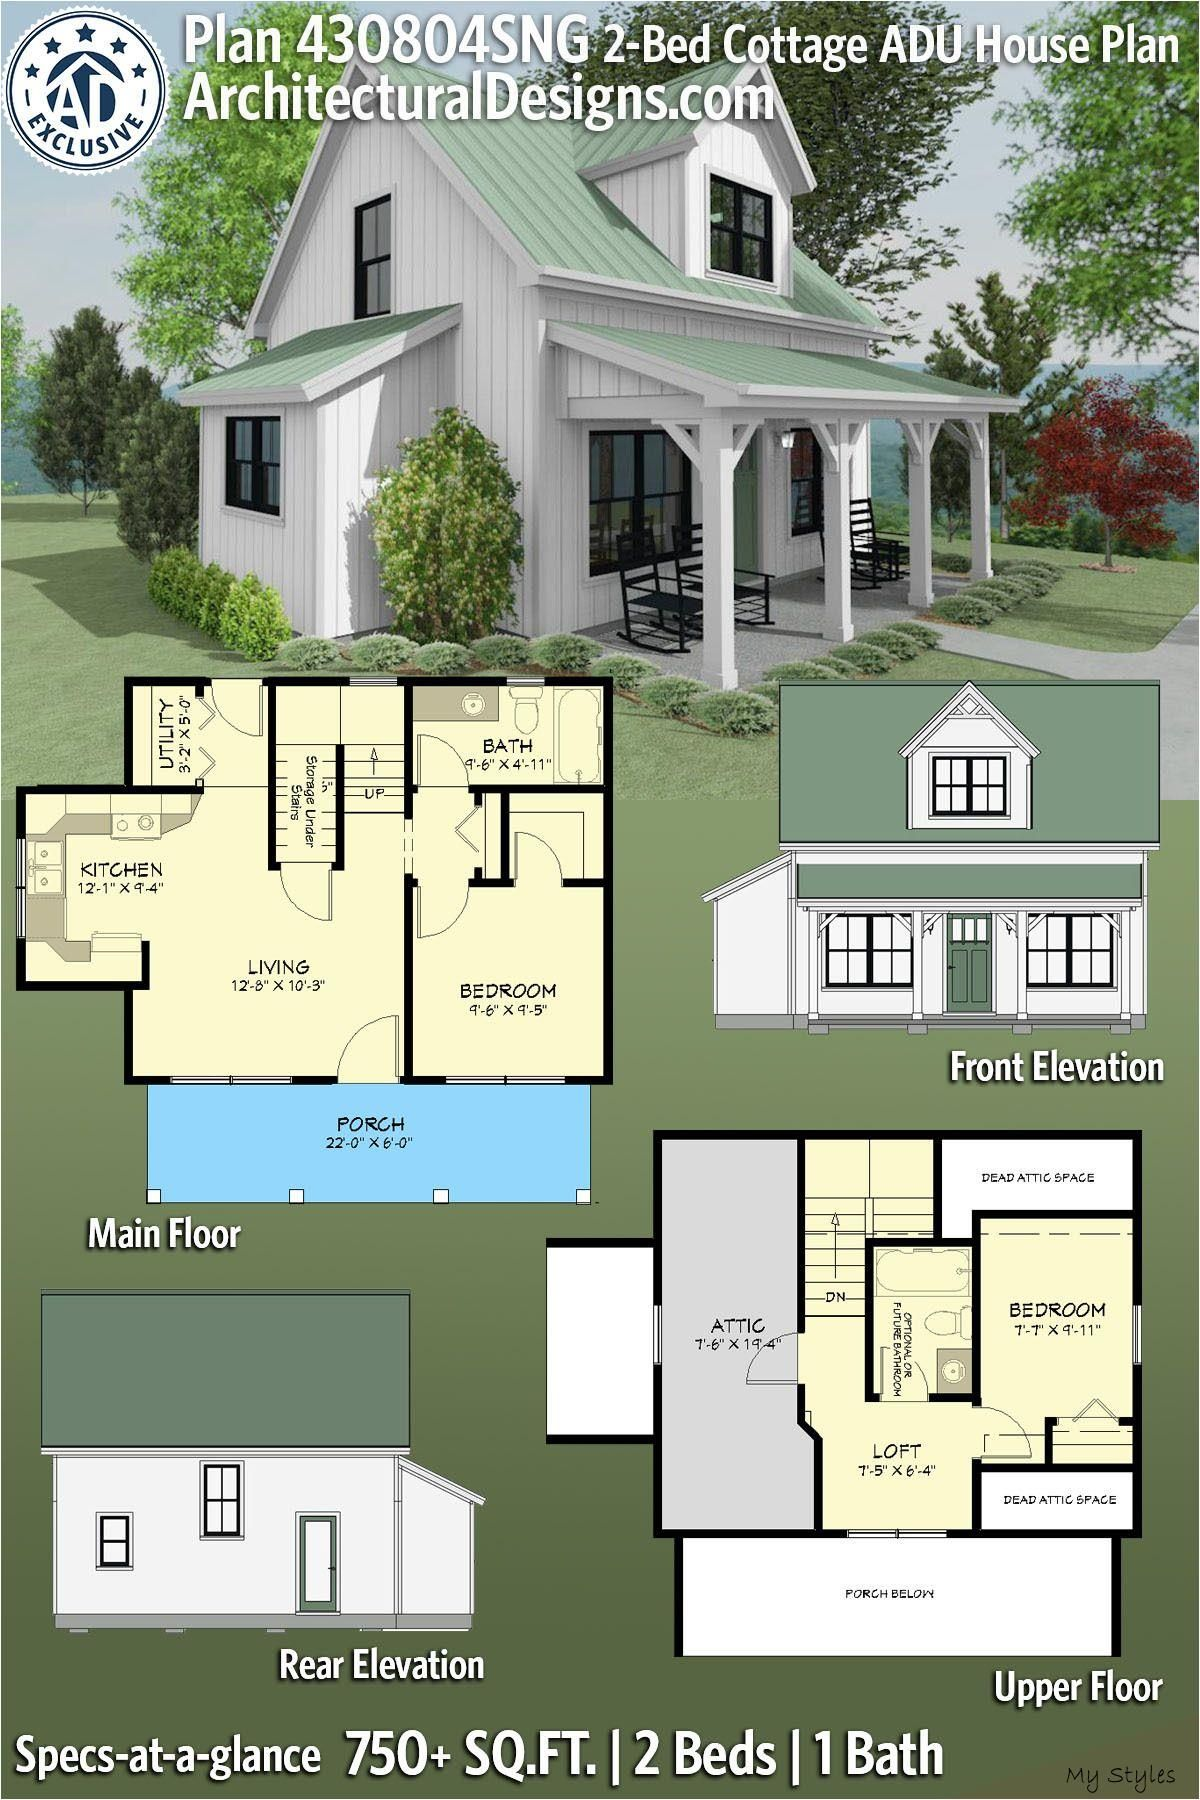 Jun 8 2020 Architectural Designs 2 Bed Cottage Adu House Plan 430804sng Gives You 750 Sqft Of Living In 2020 Sims House Plans Small Home Plan House Plans Farmhouse